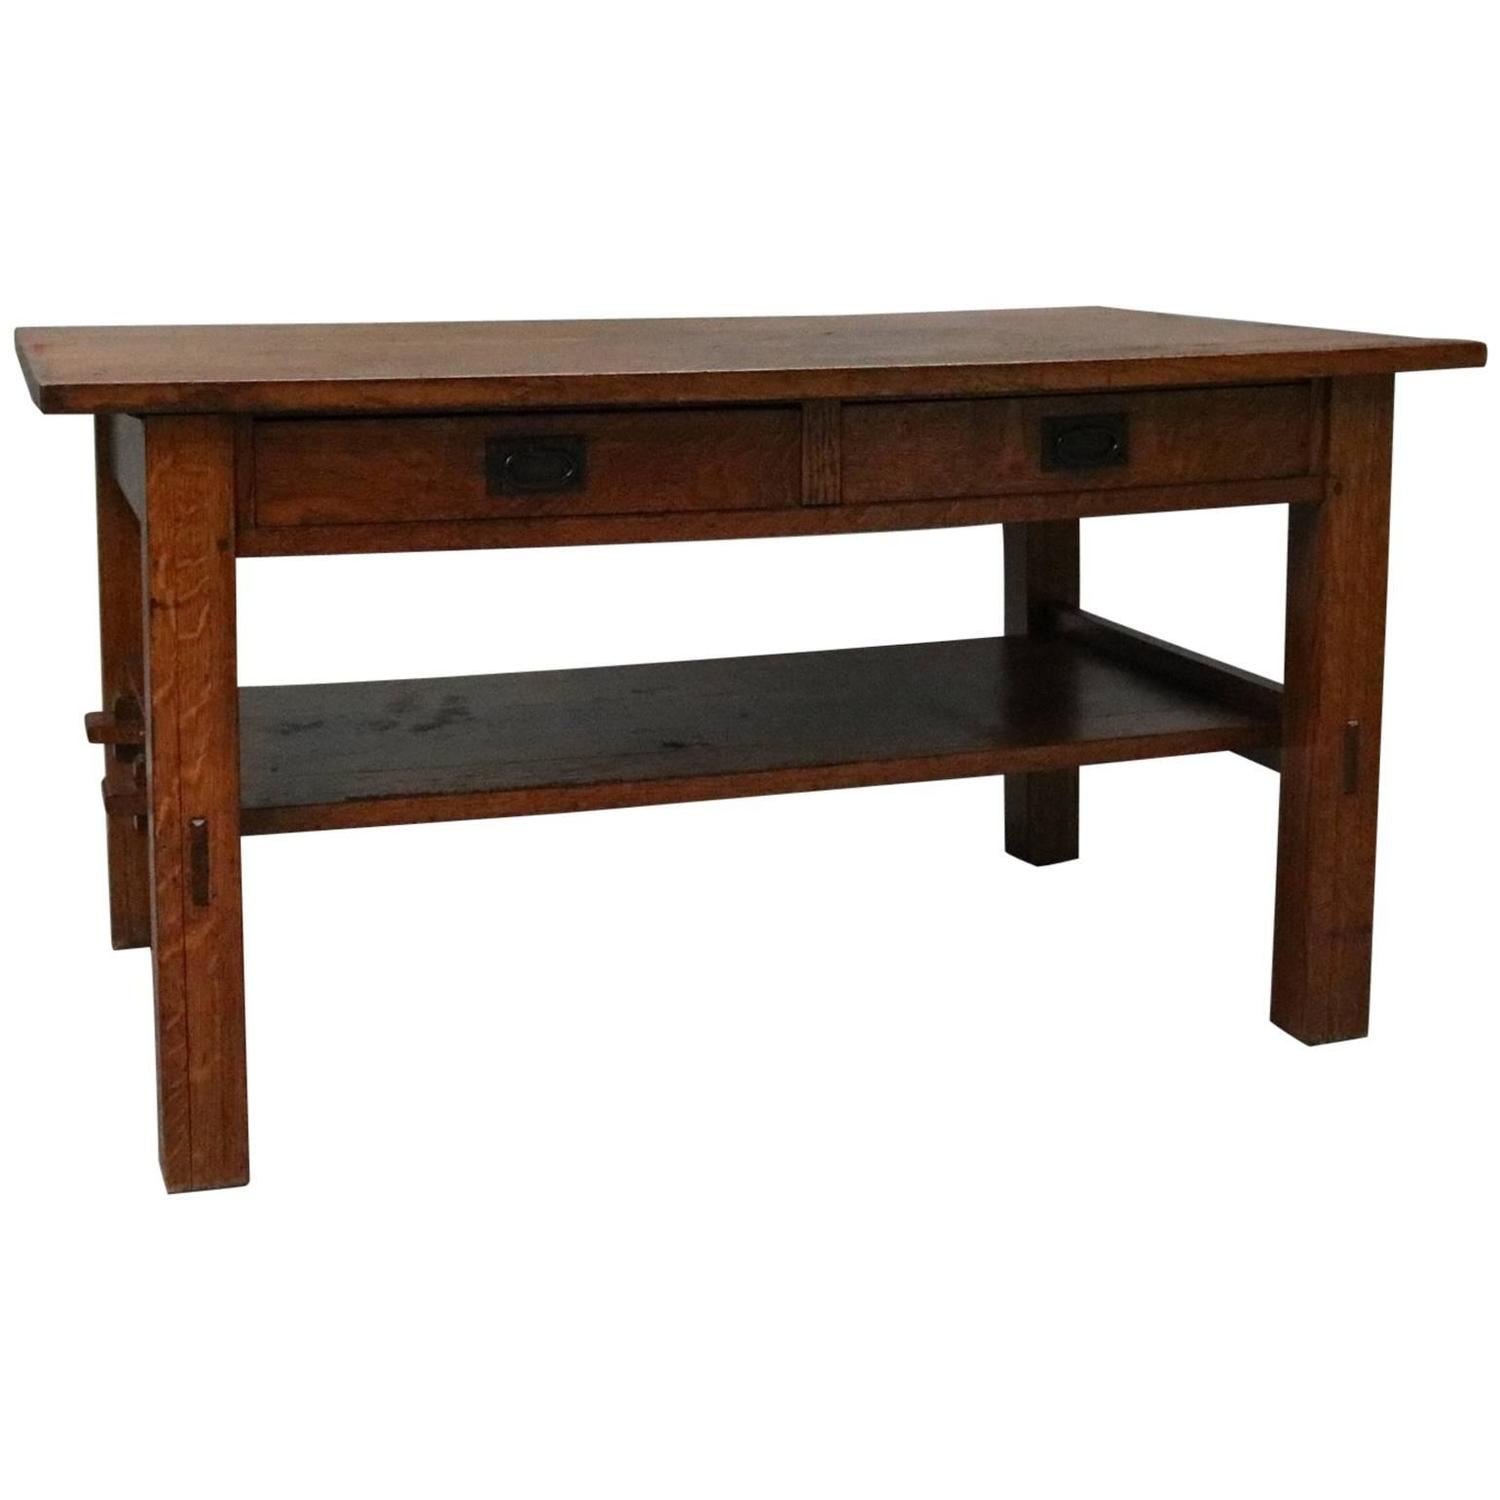 Arts and craft table - Antique Arts Amp Crafts Gustav Stickley Mission Oak Library Table Circa 1910